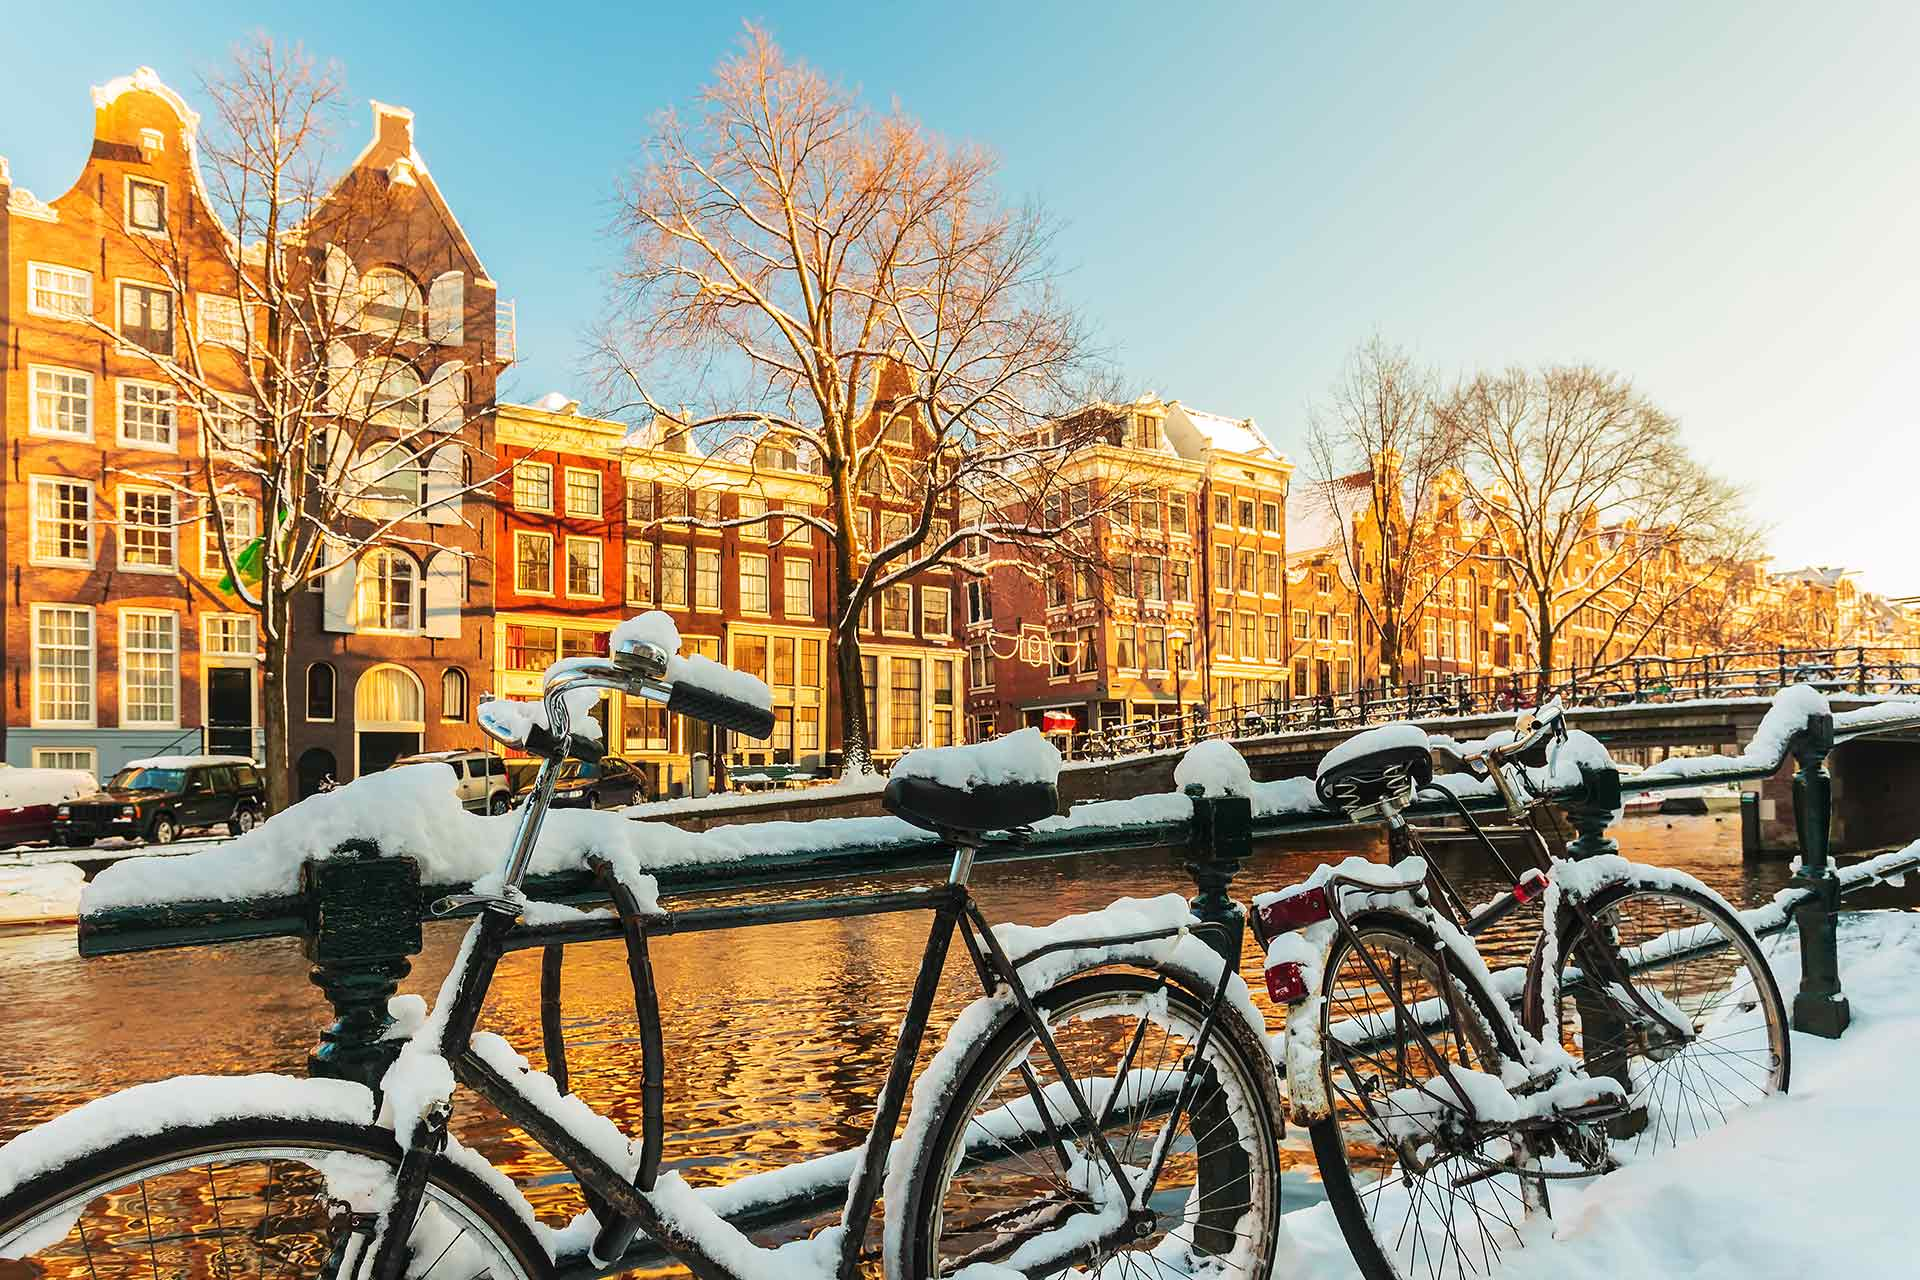 Hotel sint nicolaas amsterdam center for Alloggi amsterdam centro low cost